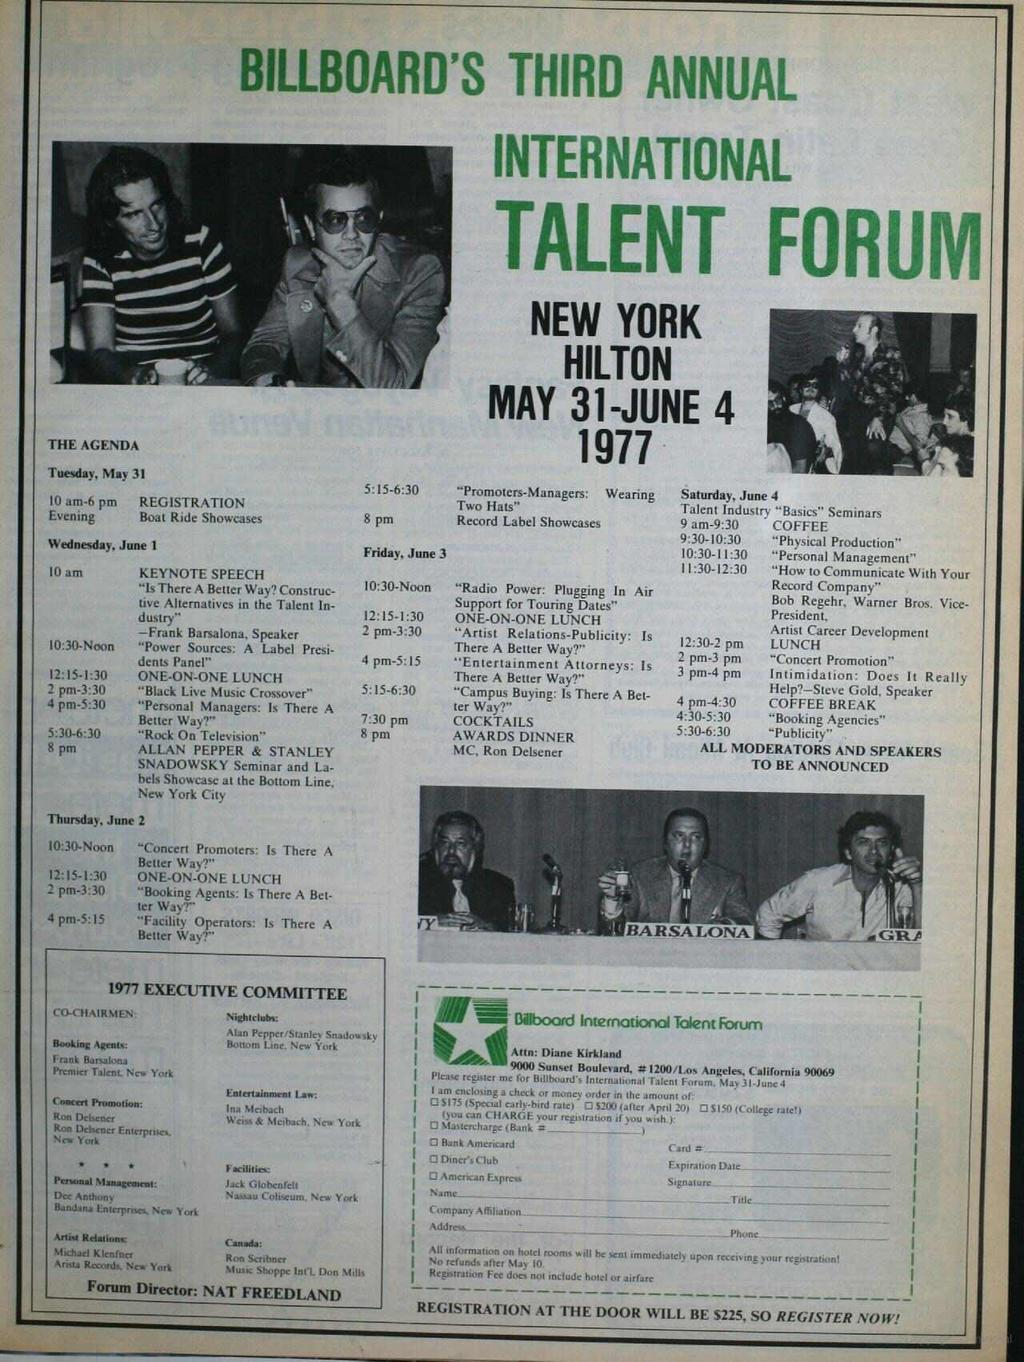 BLLBOARD'S THRD ANNUAL NTERNATONAL TALENT FORUM NEW YORK HLTON MAY -JUNE 4 THE AGENDA 977 Tuesday, May 0 am -6 pm REGSTRATON Evening Boat Ride Showcases Wednesday.